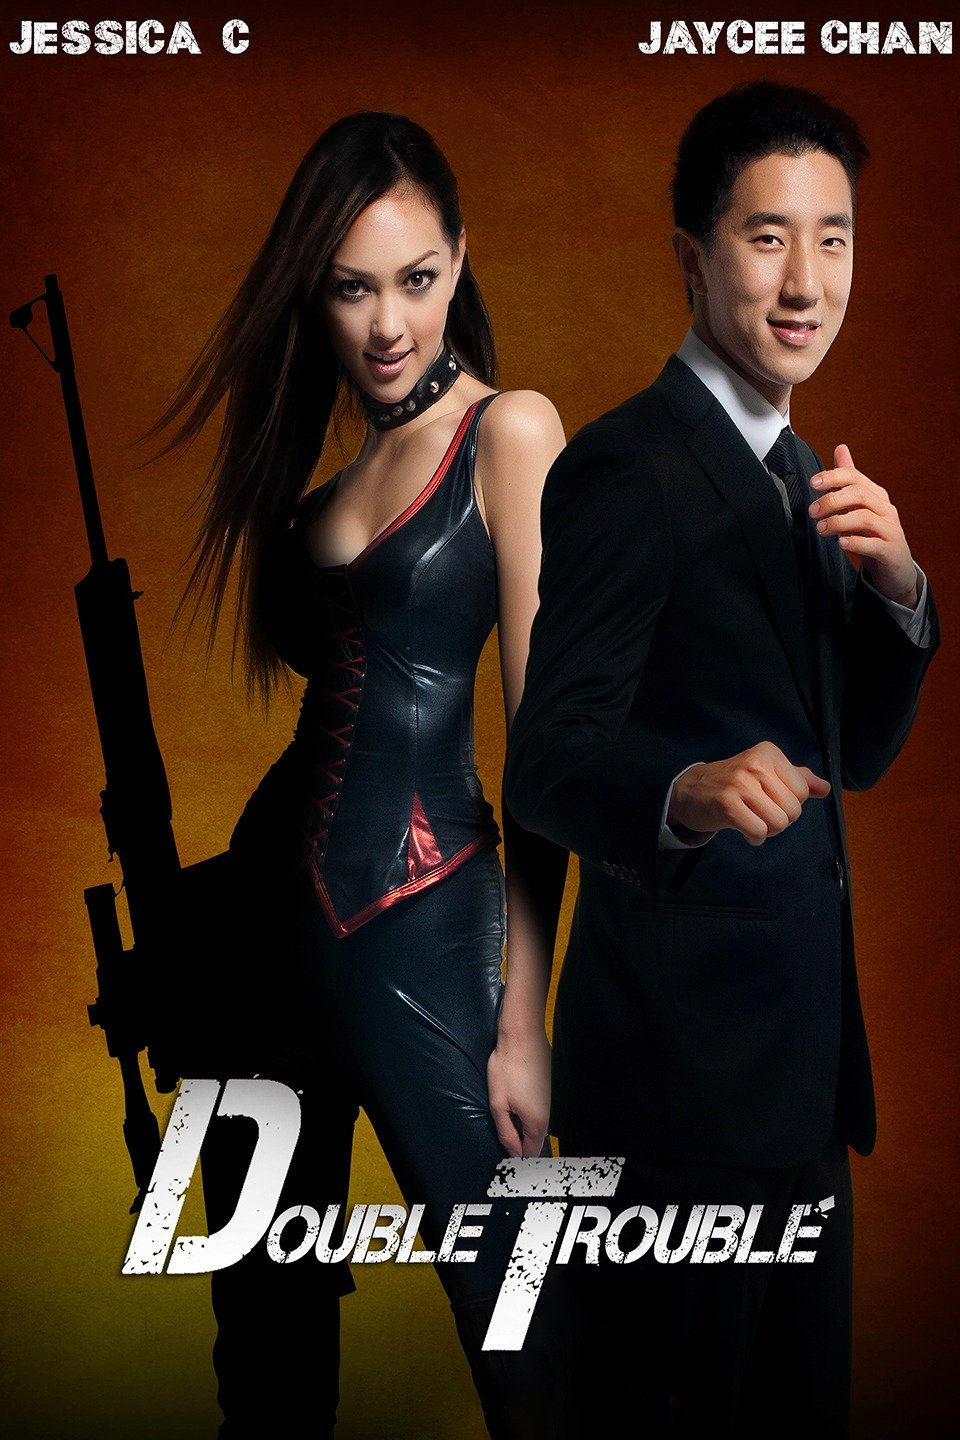 Double Trouble 2012 Full Movie Download In Hindi HDRip 300MB & 800MB